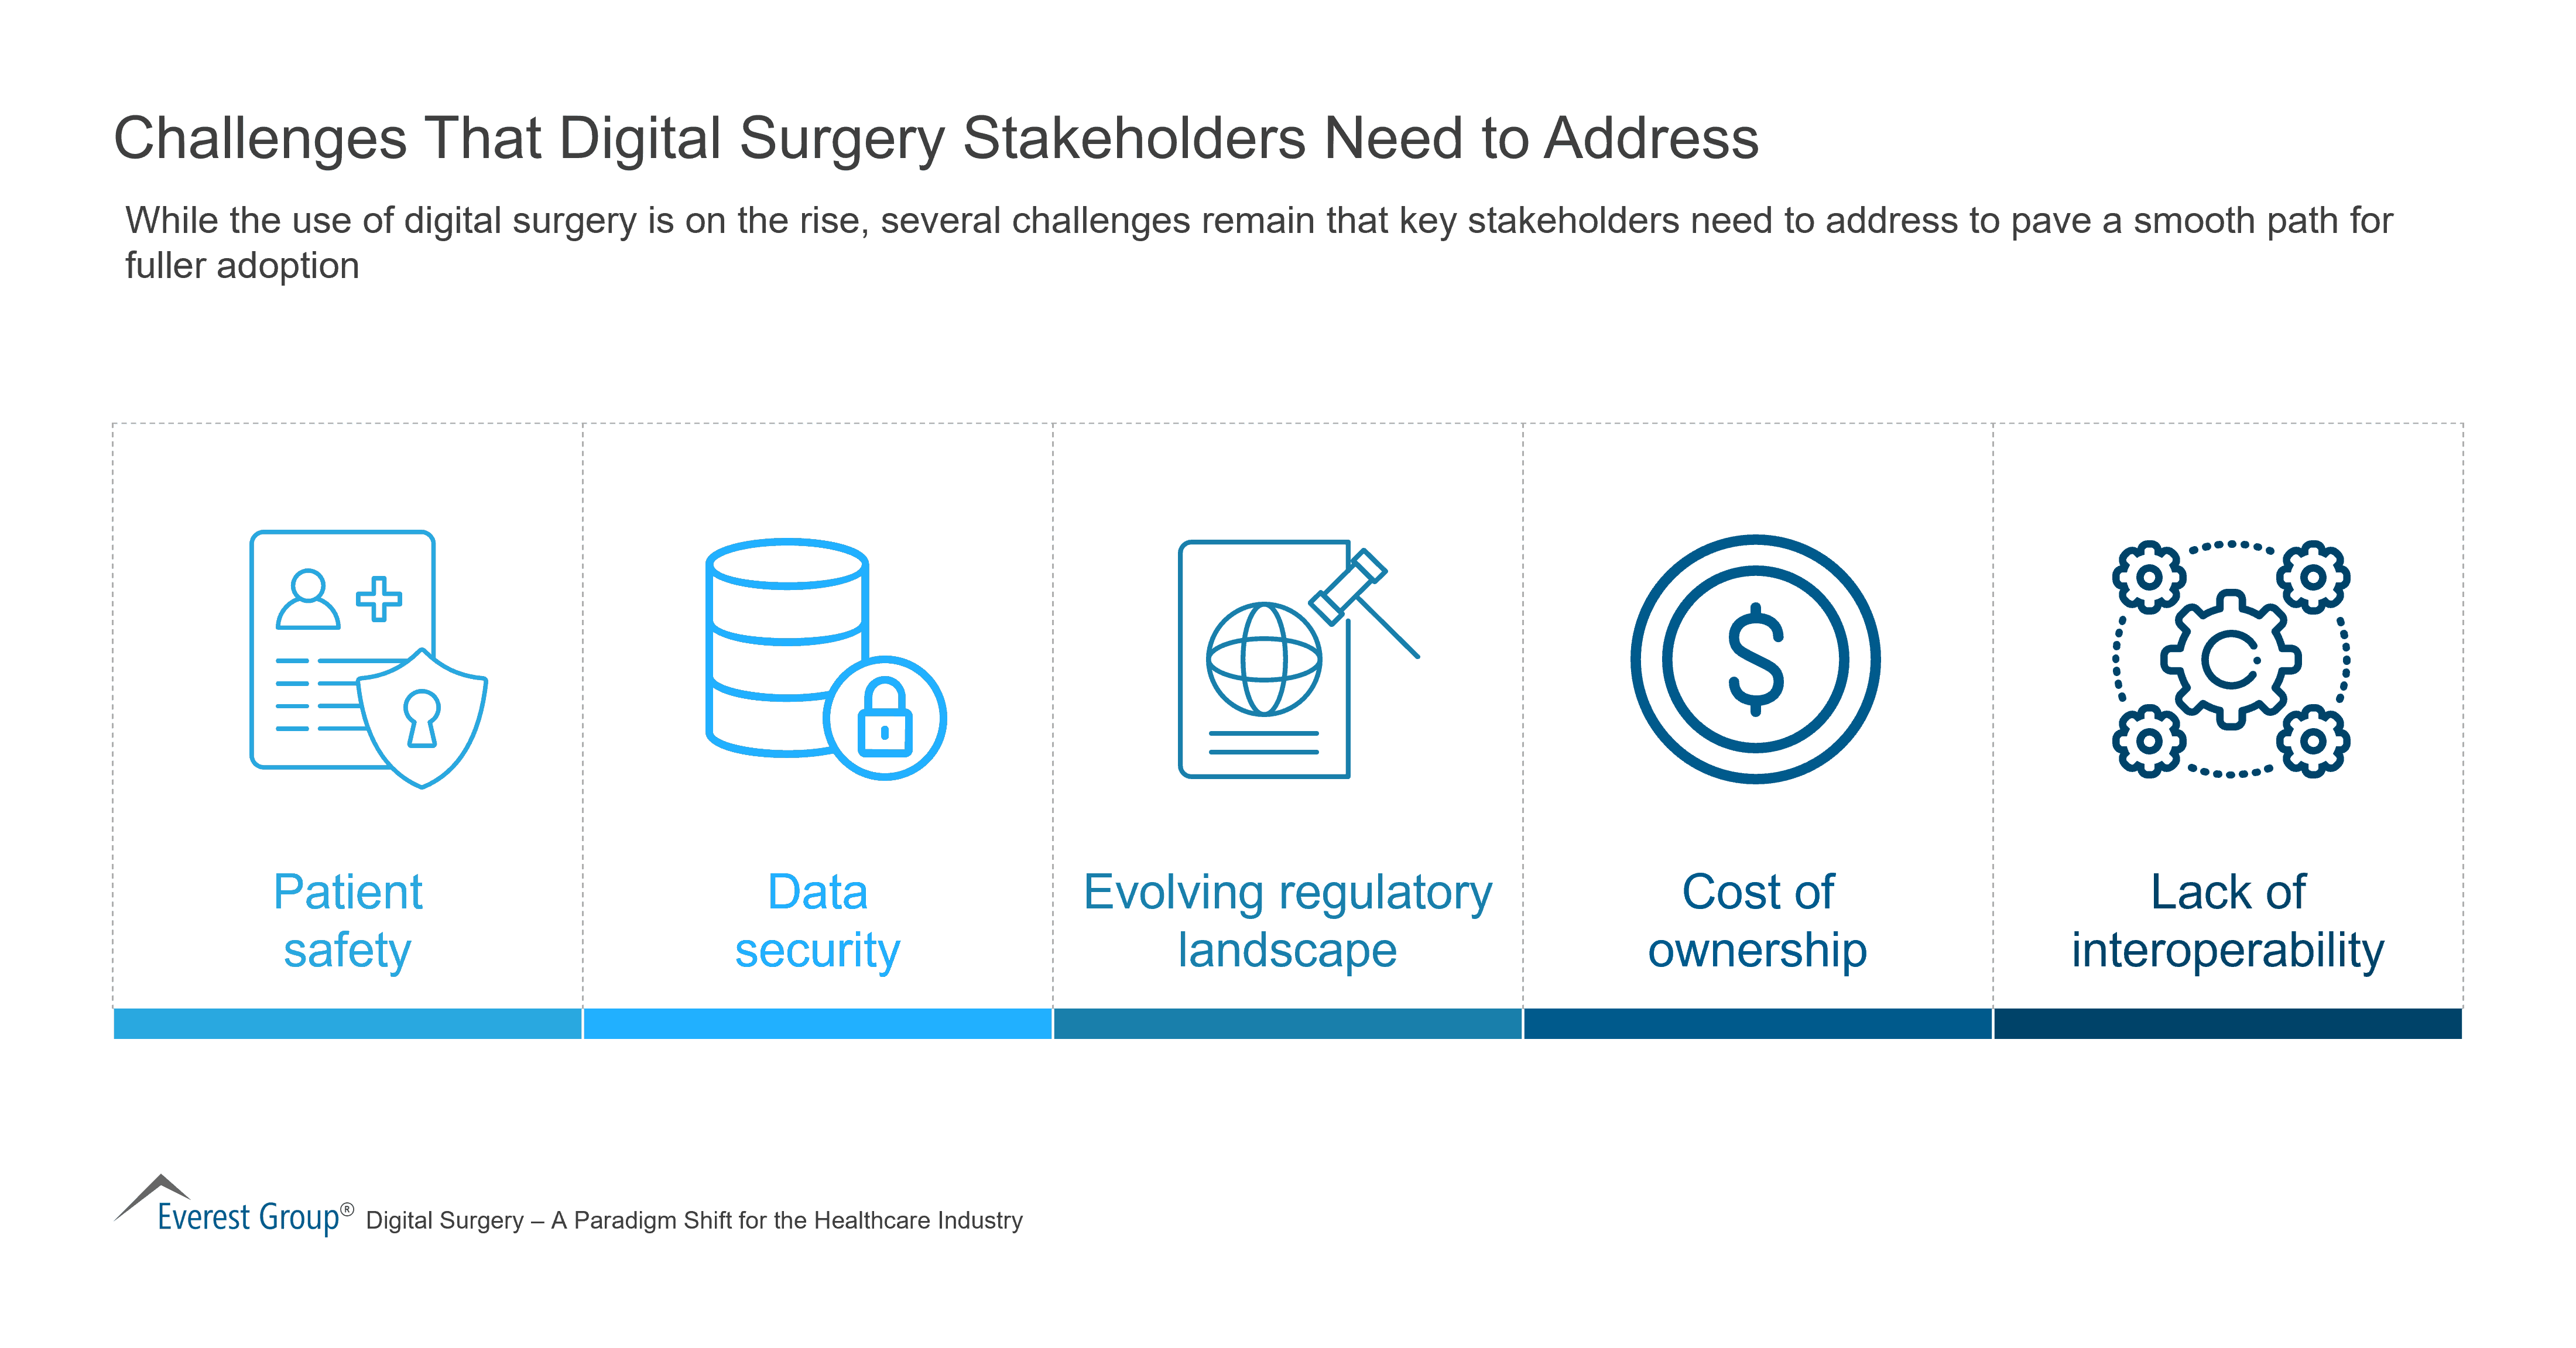 Challenges That Digital Surgery Stakeholders Need to Address